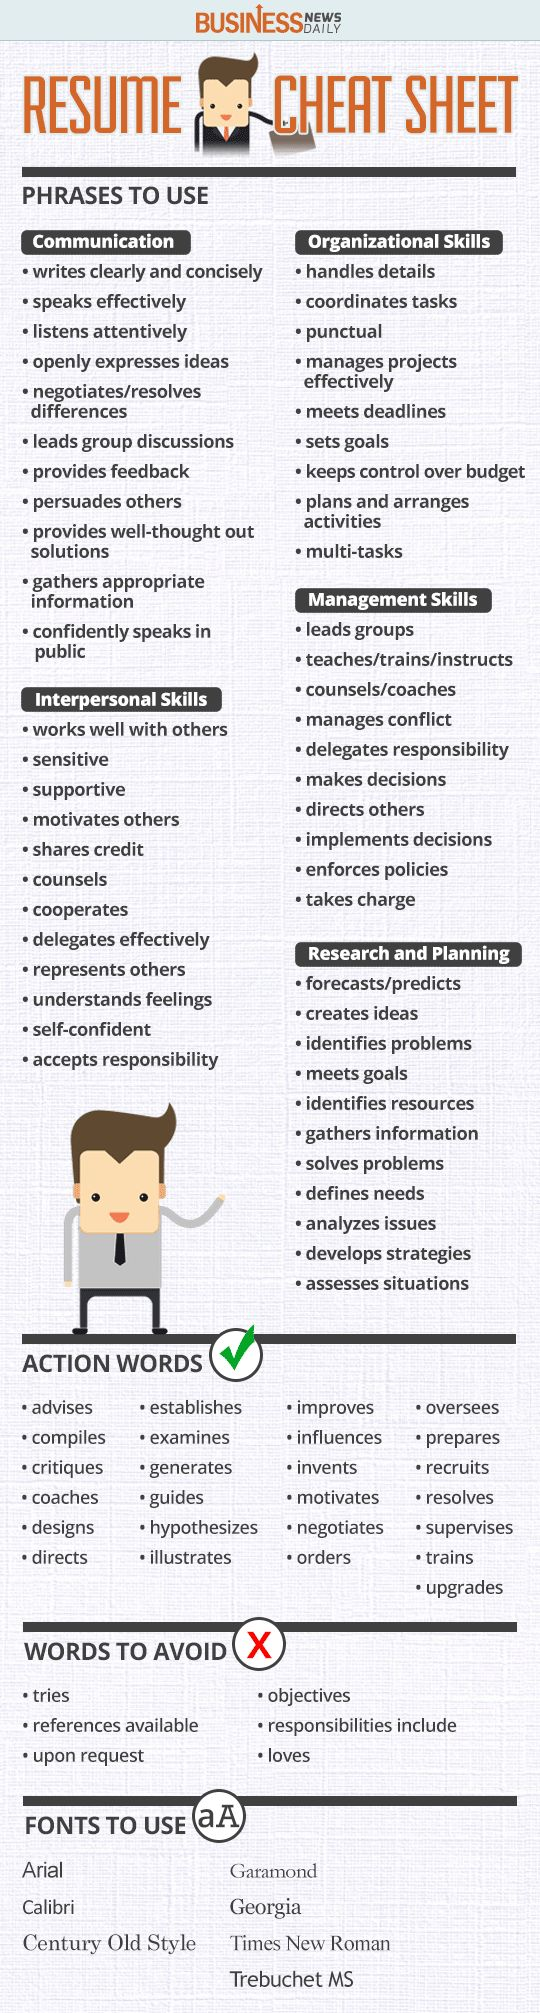 resume cheat sheet infographic andrew s almost done with a